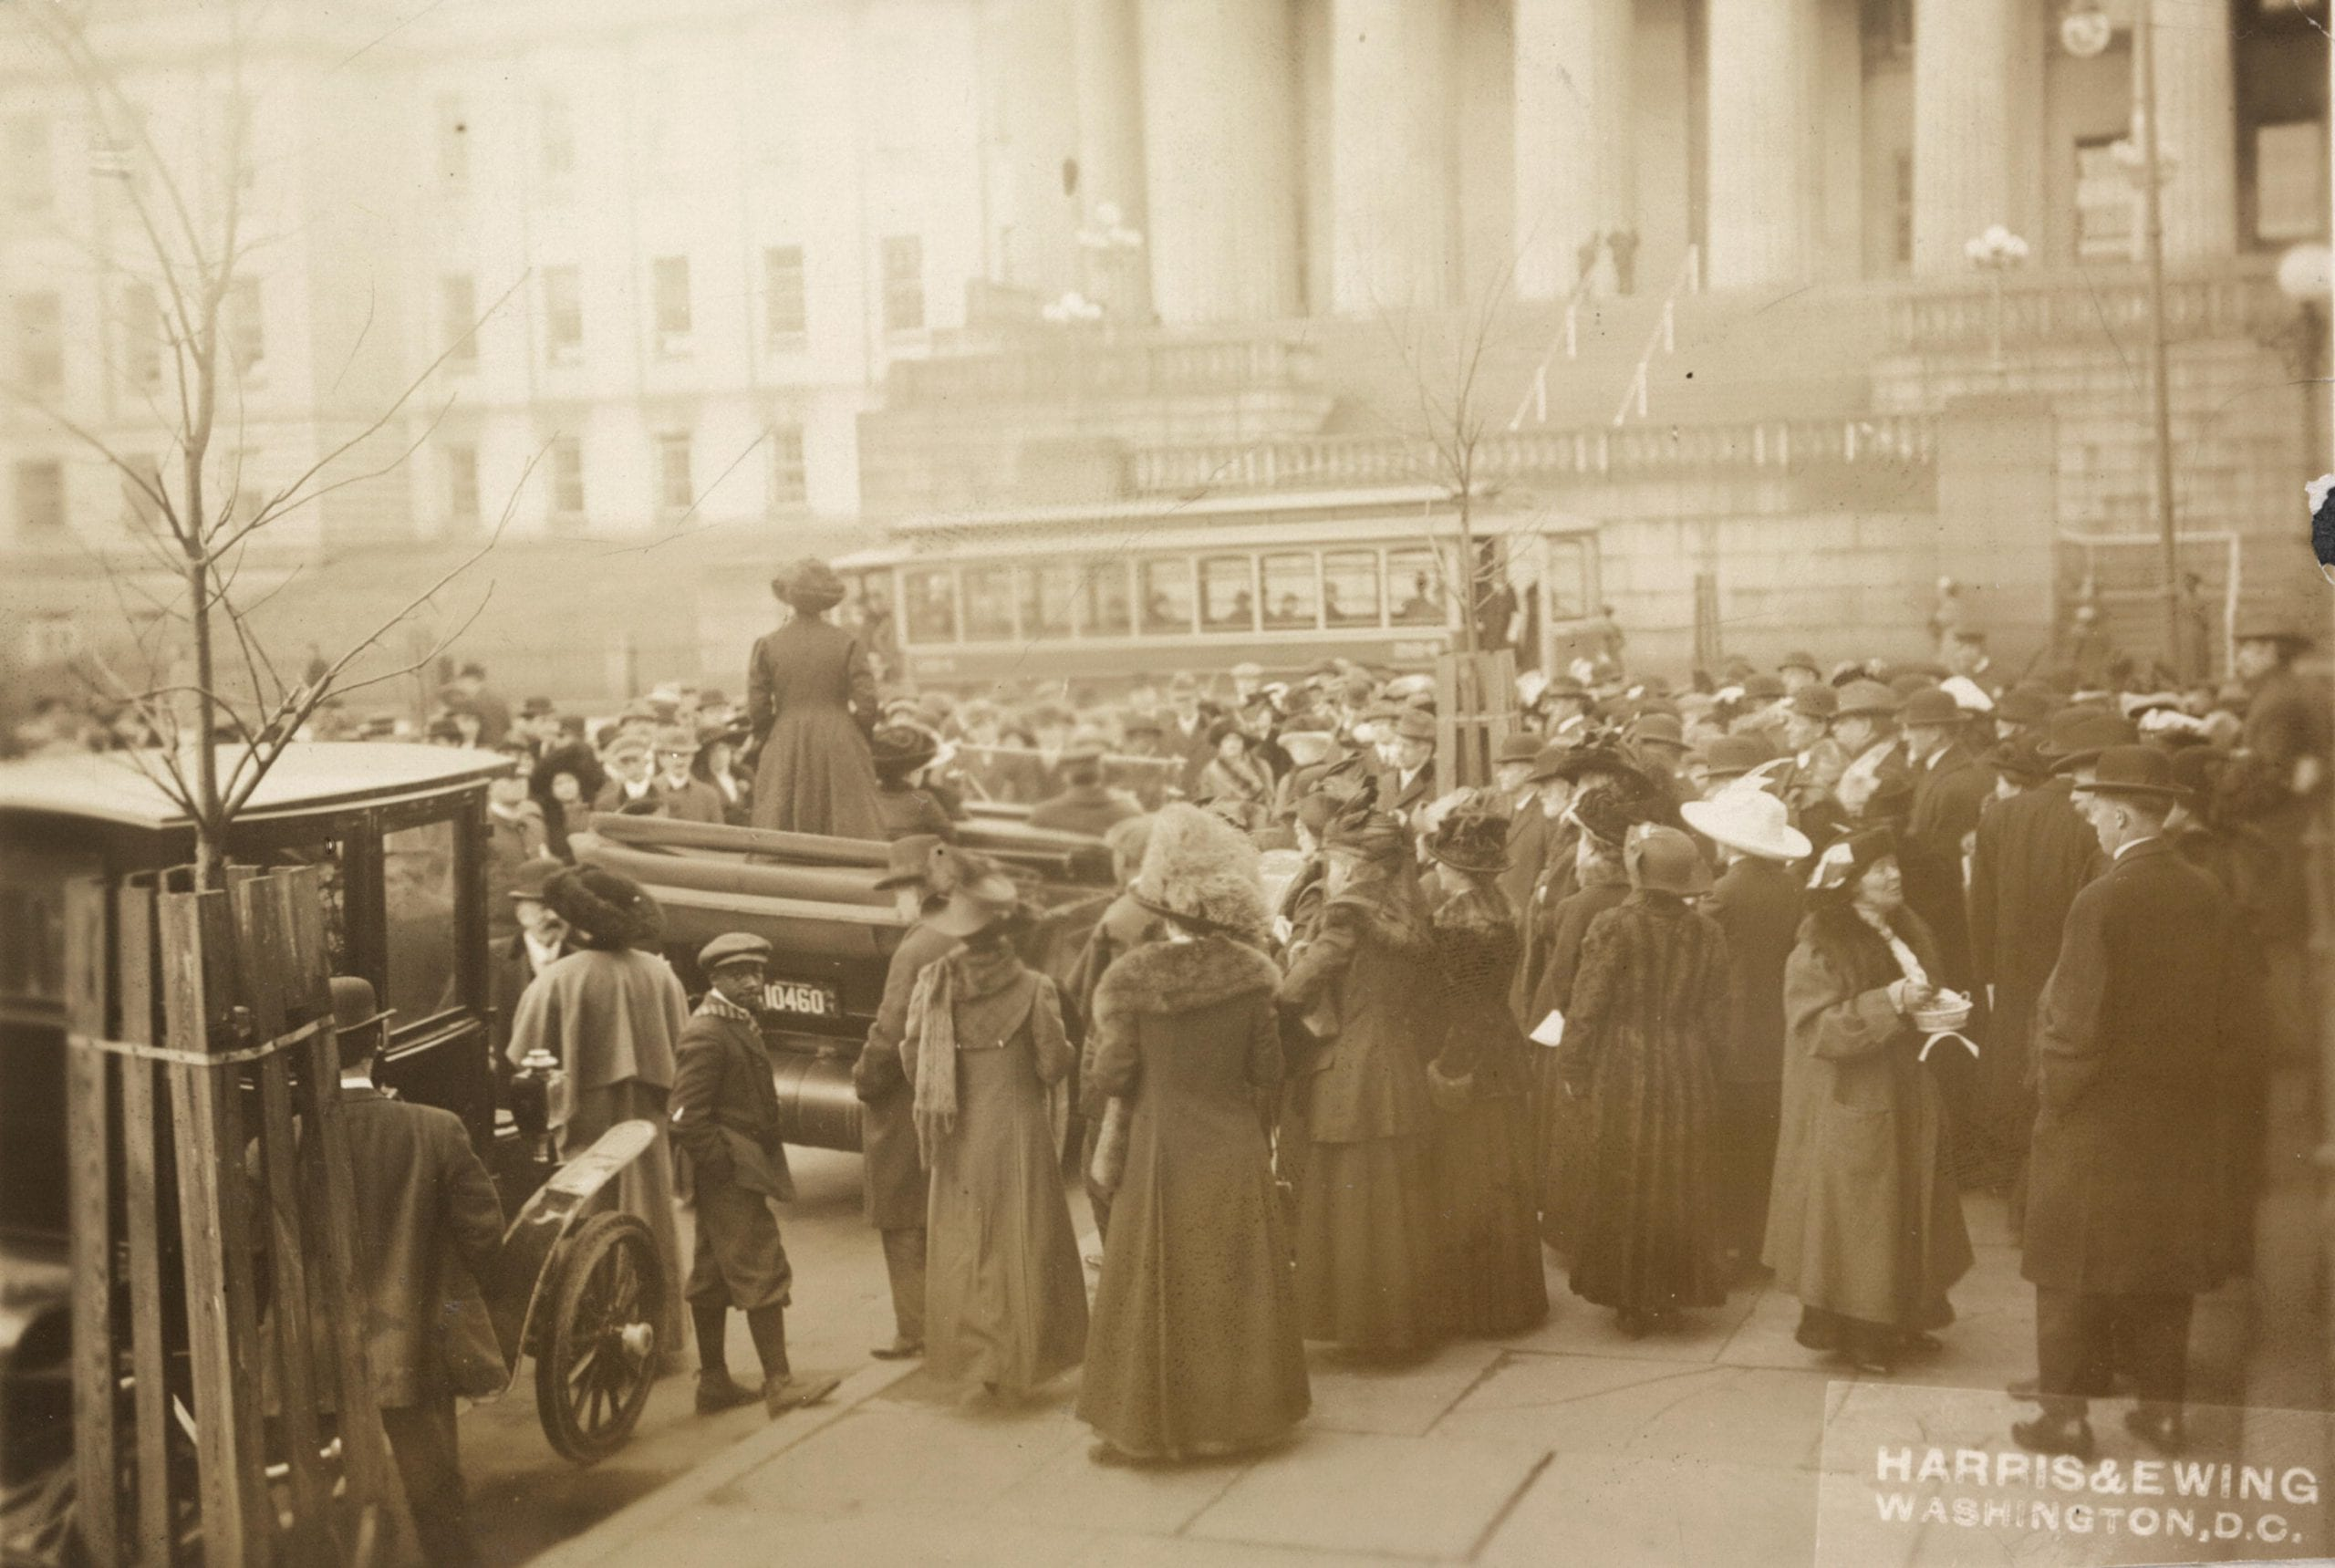 Open air meeting at Washington, D.C. March 1913, calling upon Congress to pass the national woman suffrage amendment. Mrs. Mary Beard, wife of Professor Charles Beard of Columbia University, and a member of the Executive Committee of the Congressional Union for Woman Suffrage, is speaking.